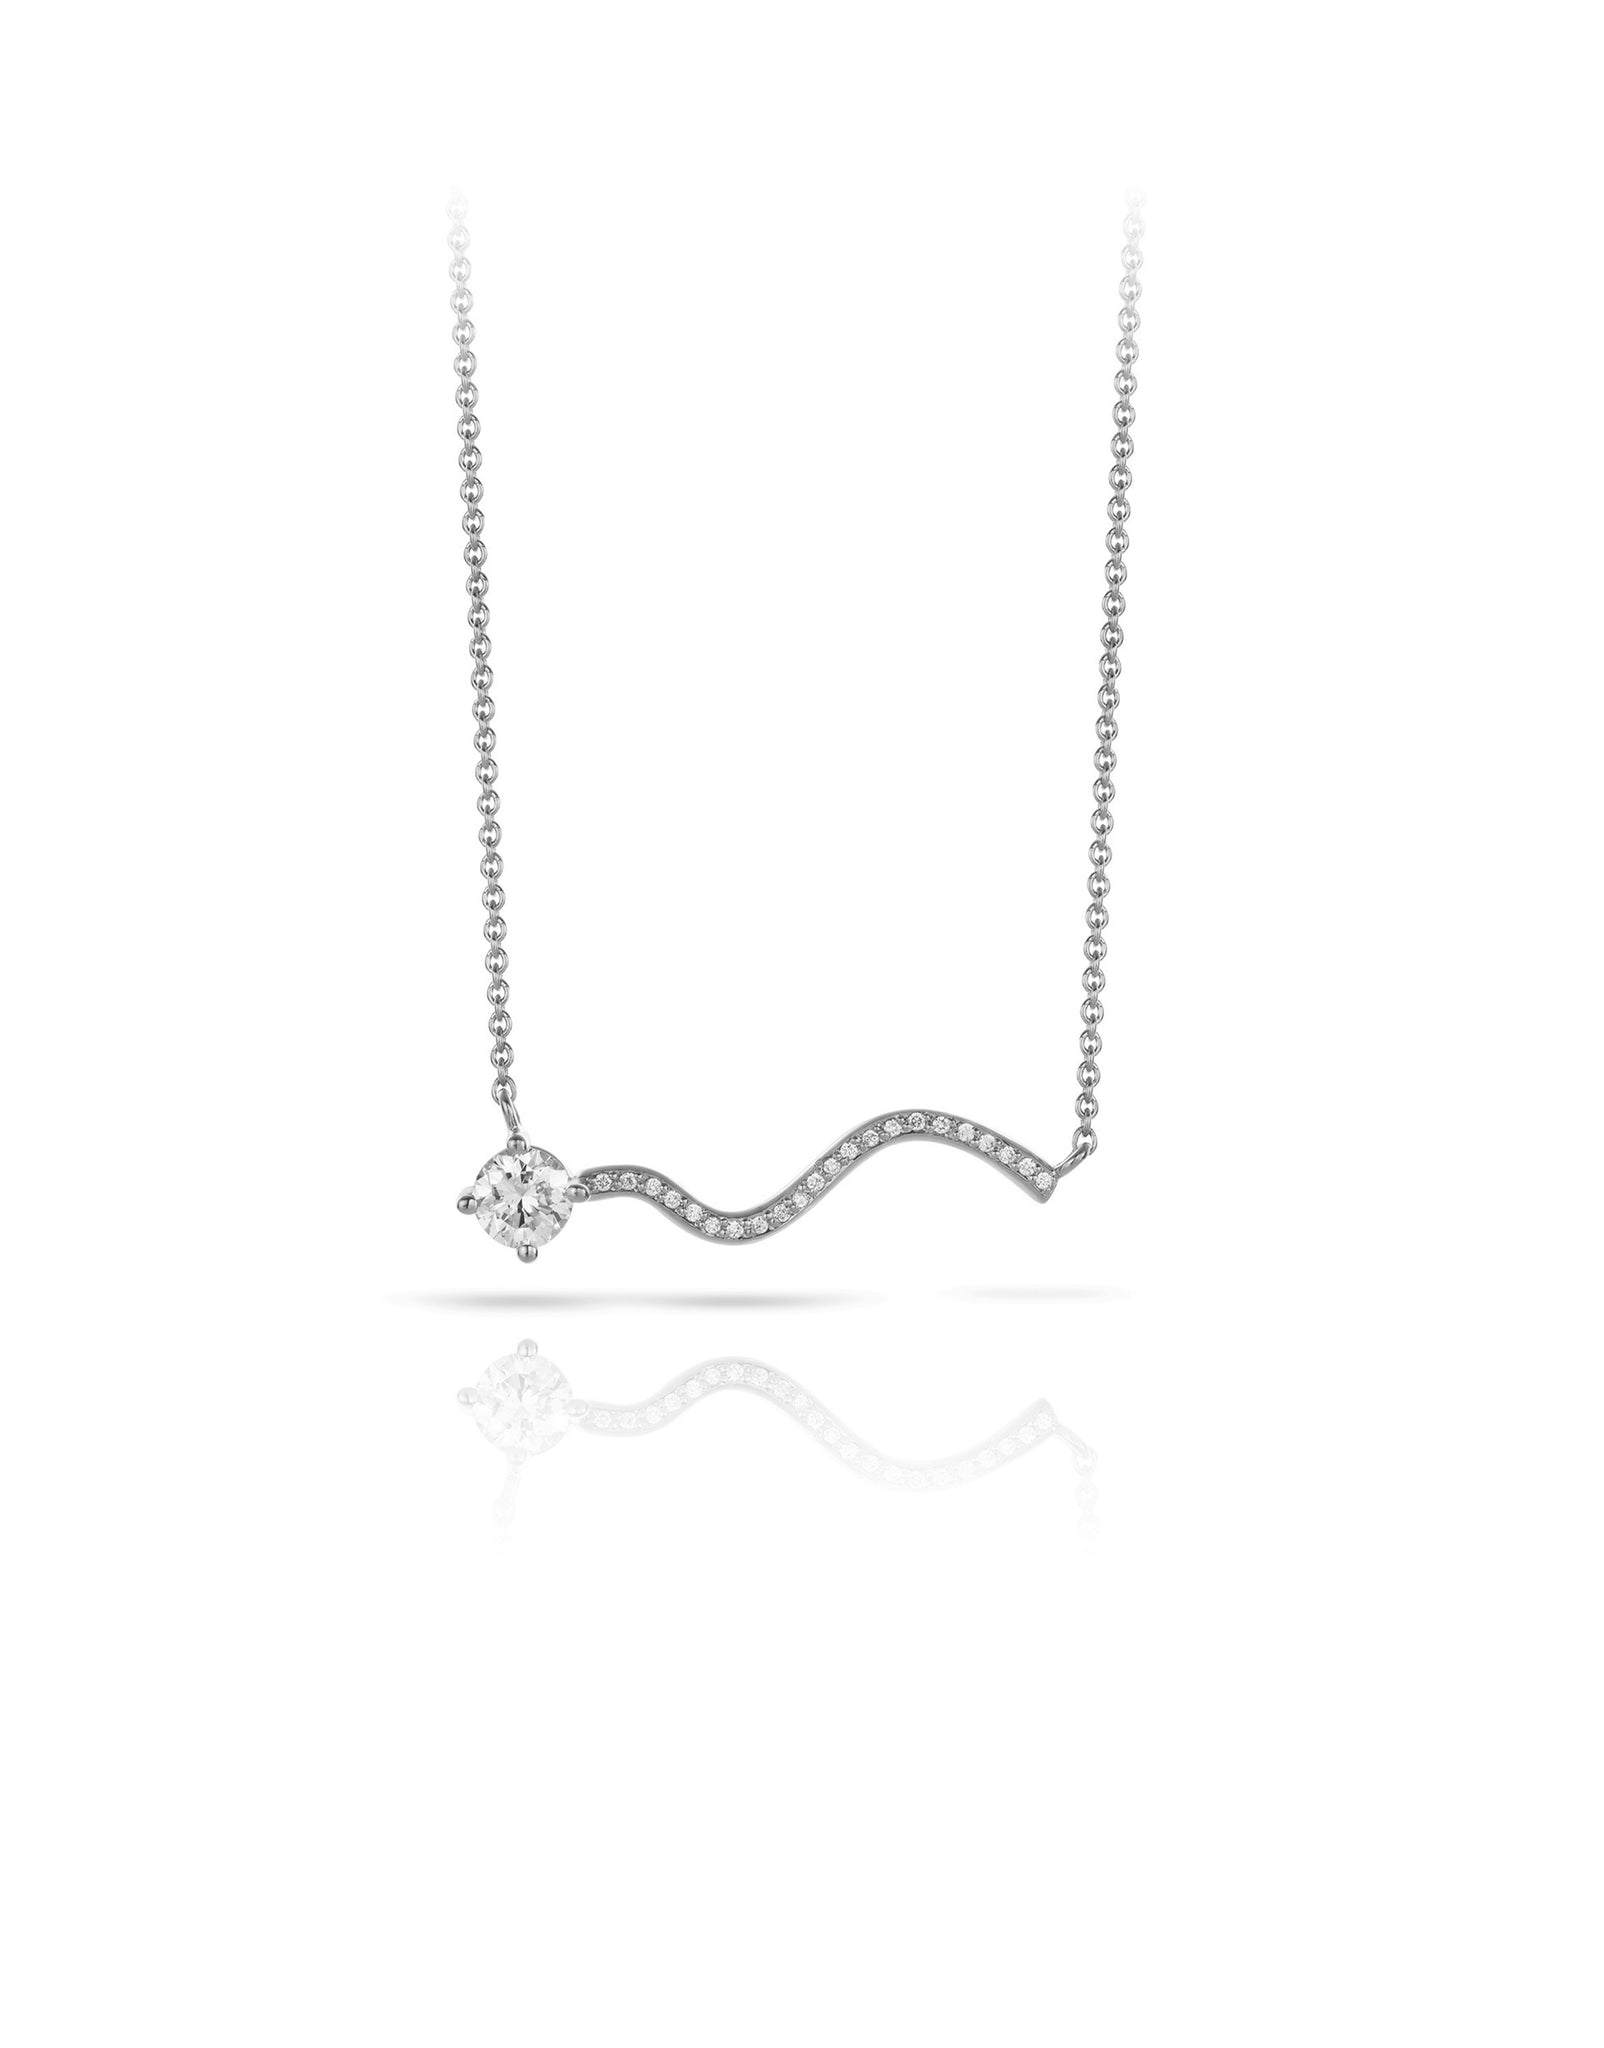 Necklace 18K gold with diamonds - Petite comete necklace diamonds - Nayestones